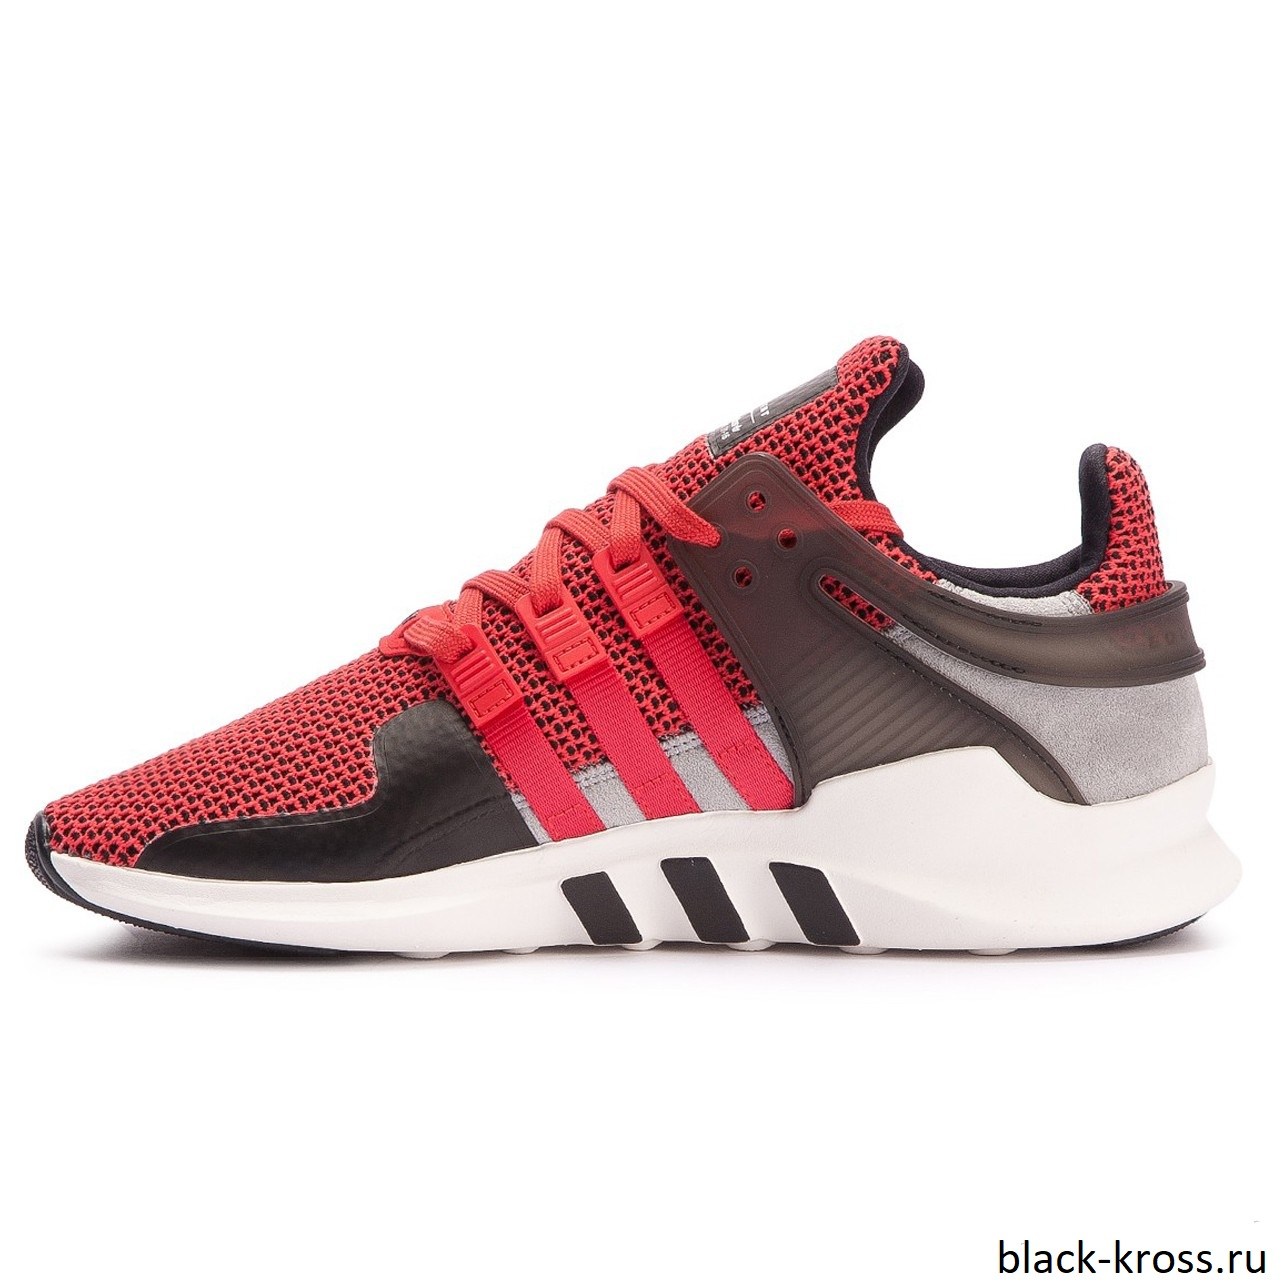 adidas-equipment-support-adv-red-black-1ff